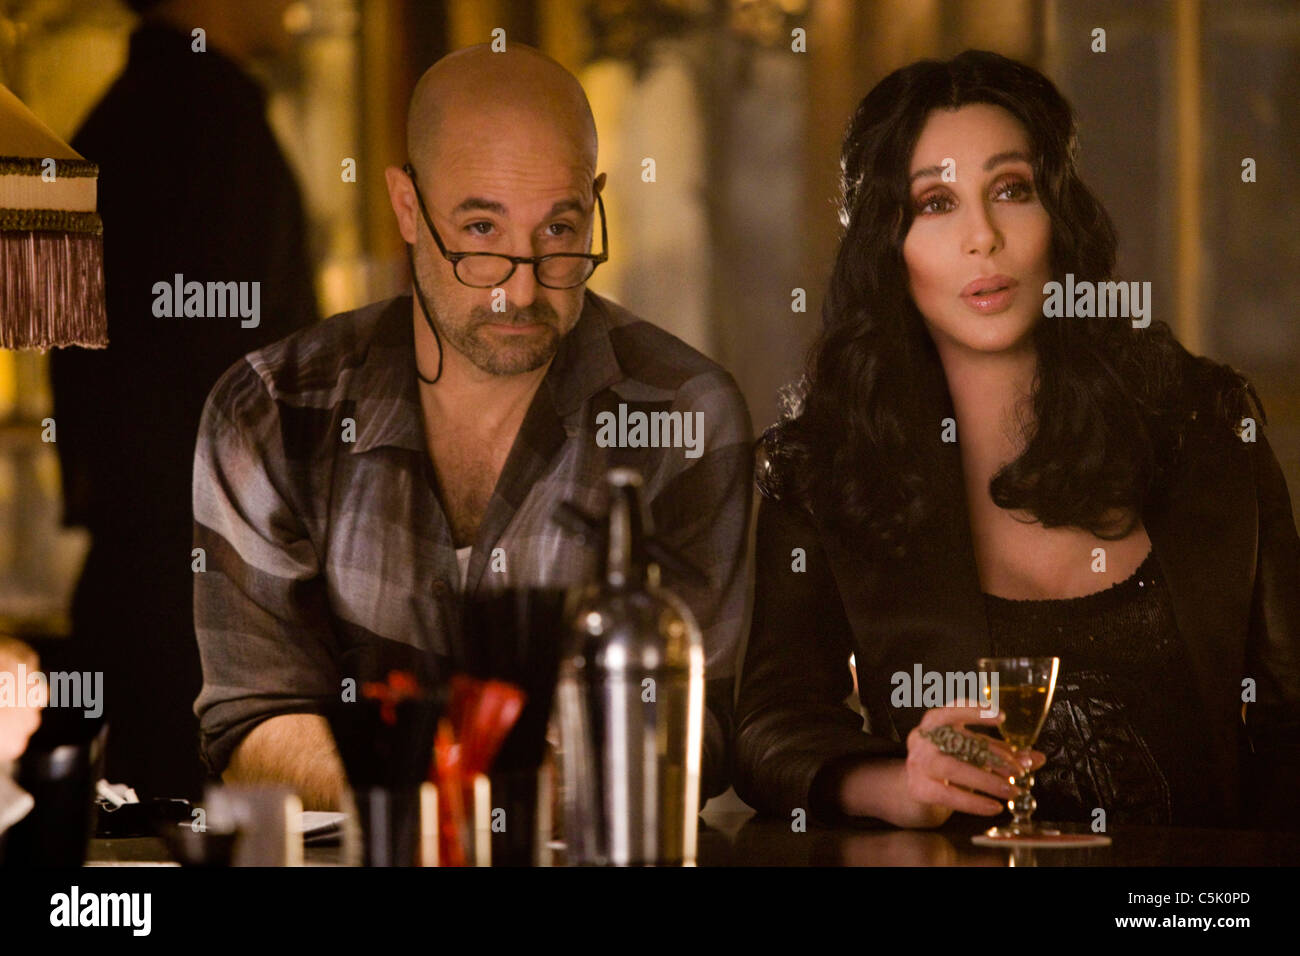 BURLESQUE (2010) CHER, STANLEY TUCCI STEVE ANTIN (DIR) 007 MOVIESTORE COLLECTION LTD - Stock Image